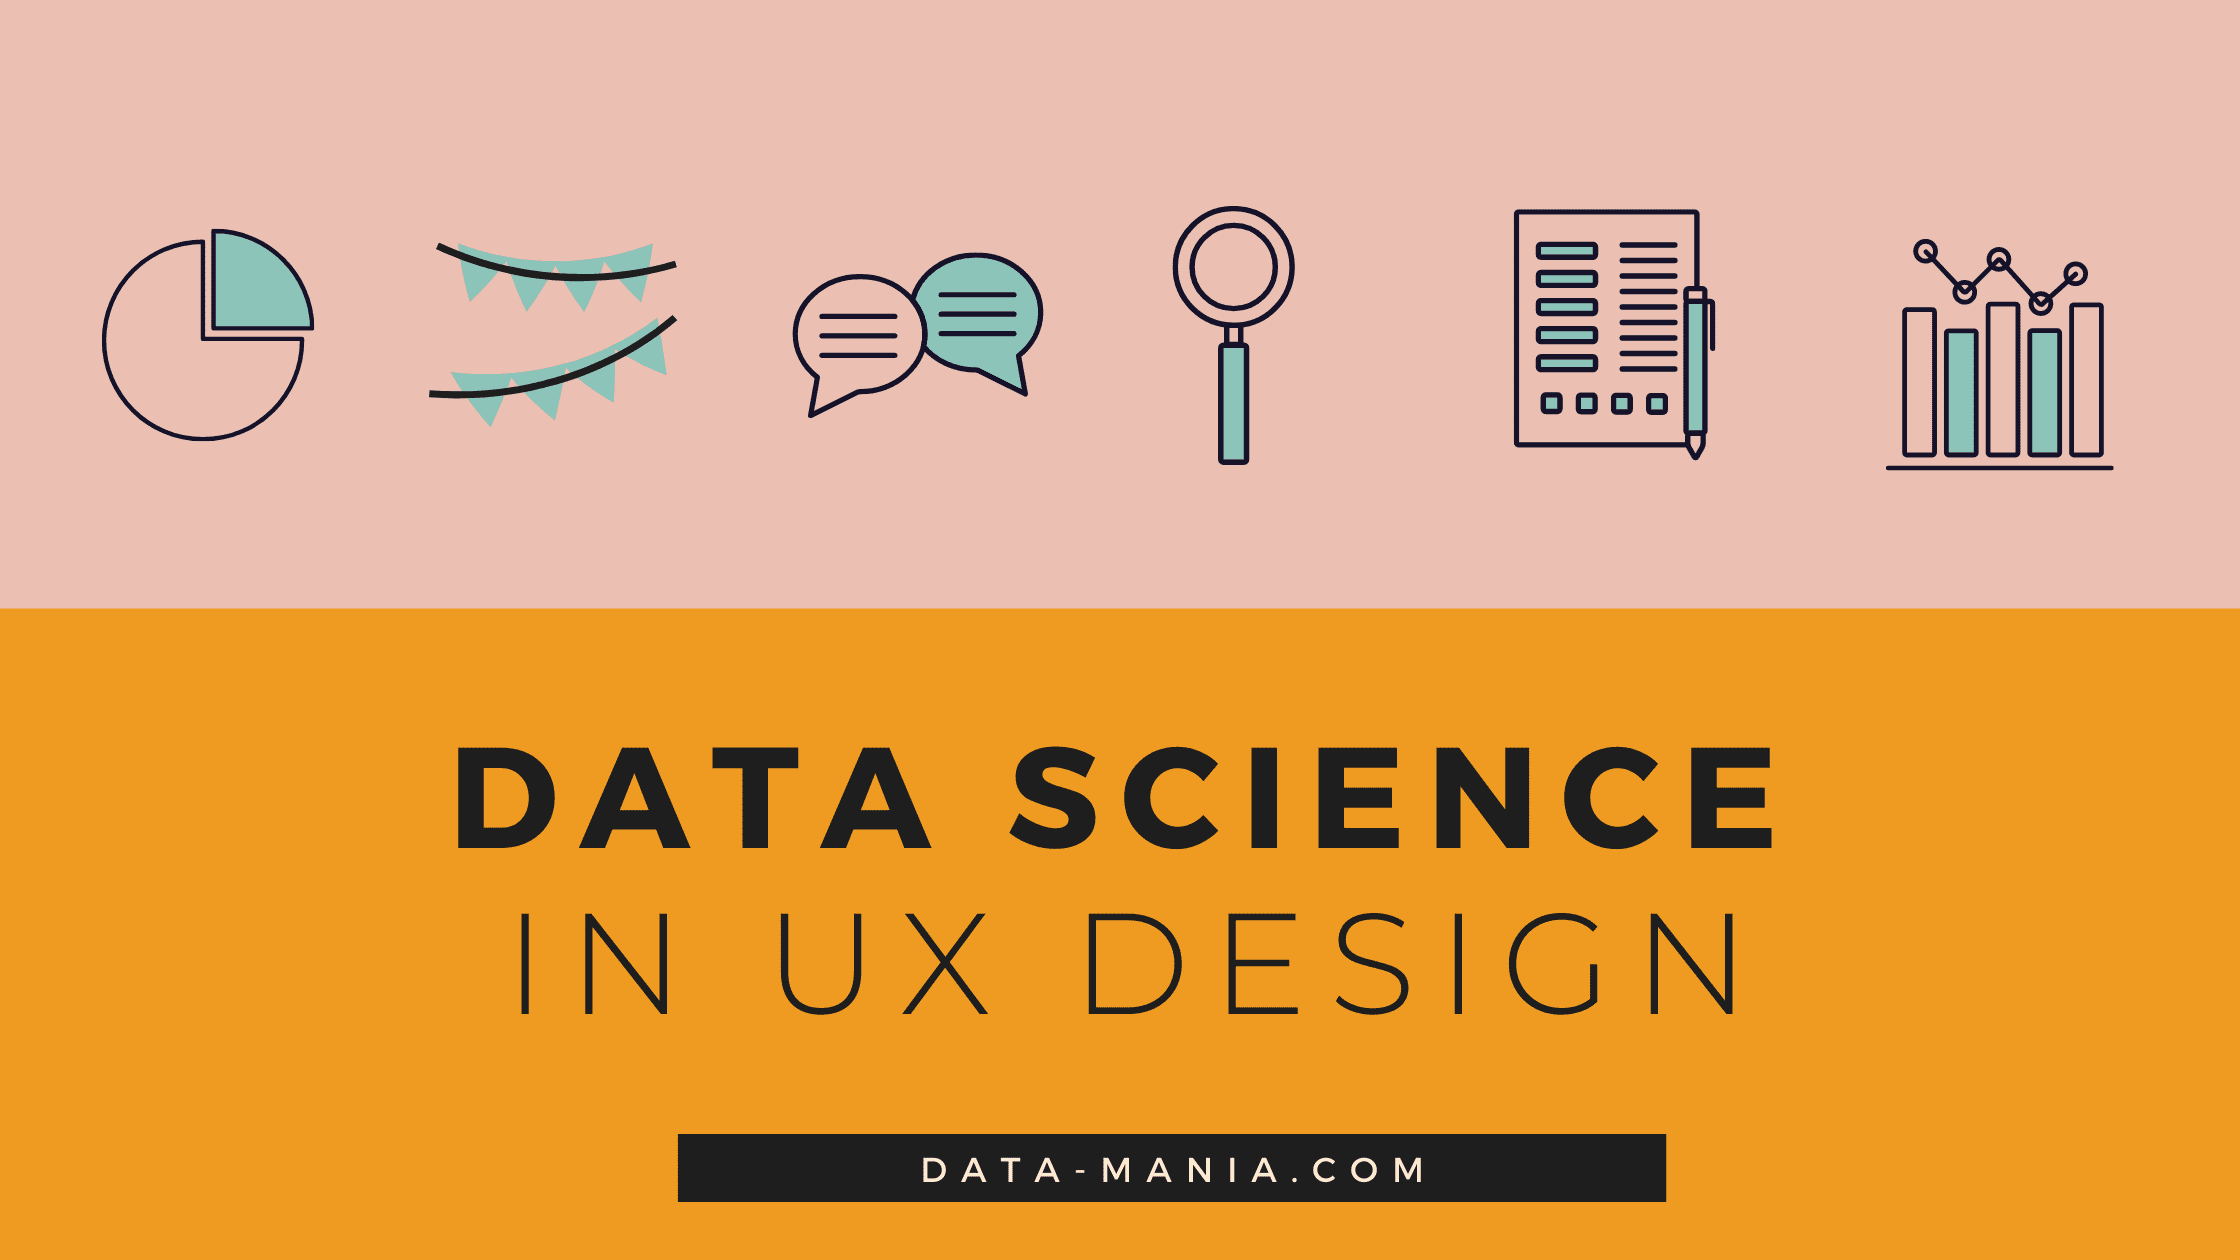 Data Science and UX Design Power Duo